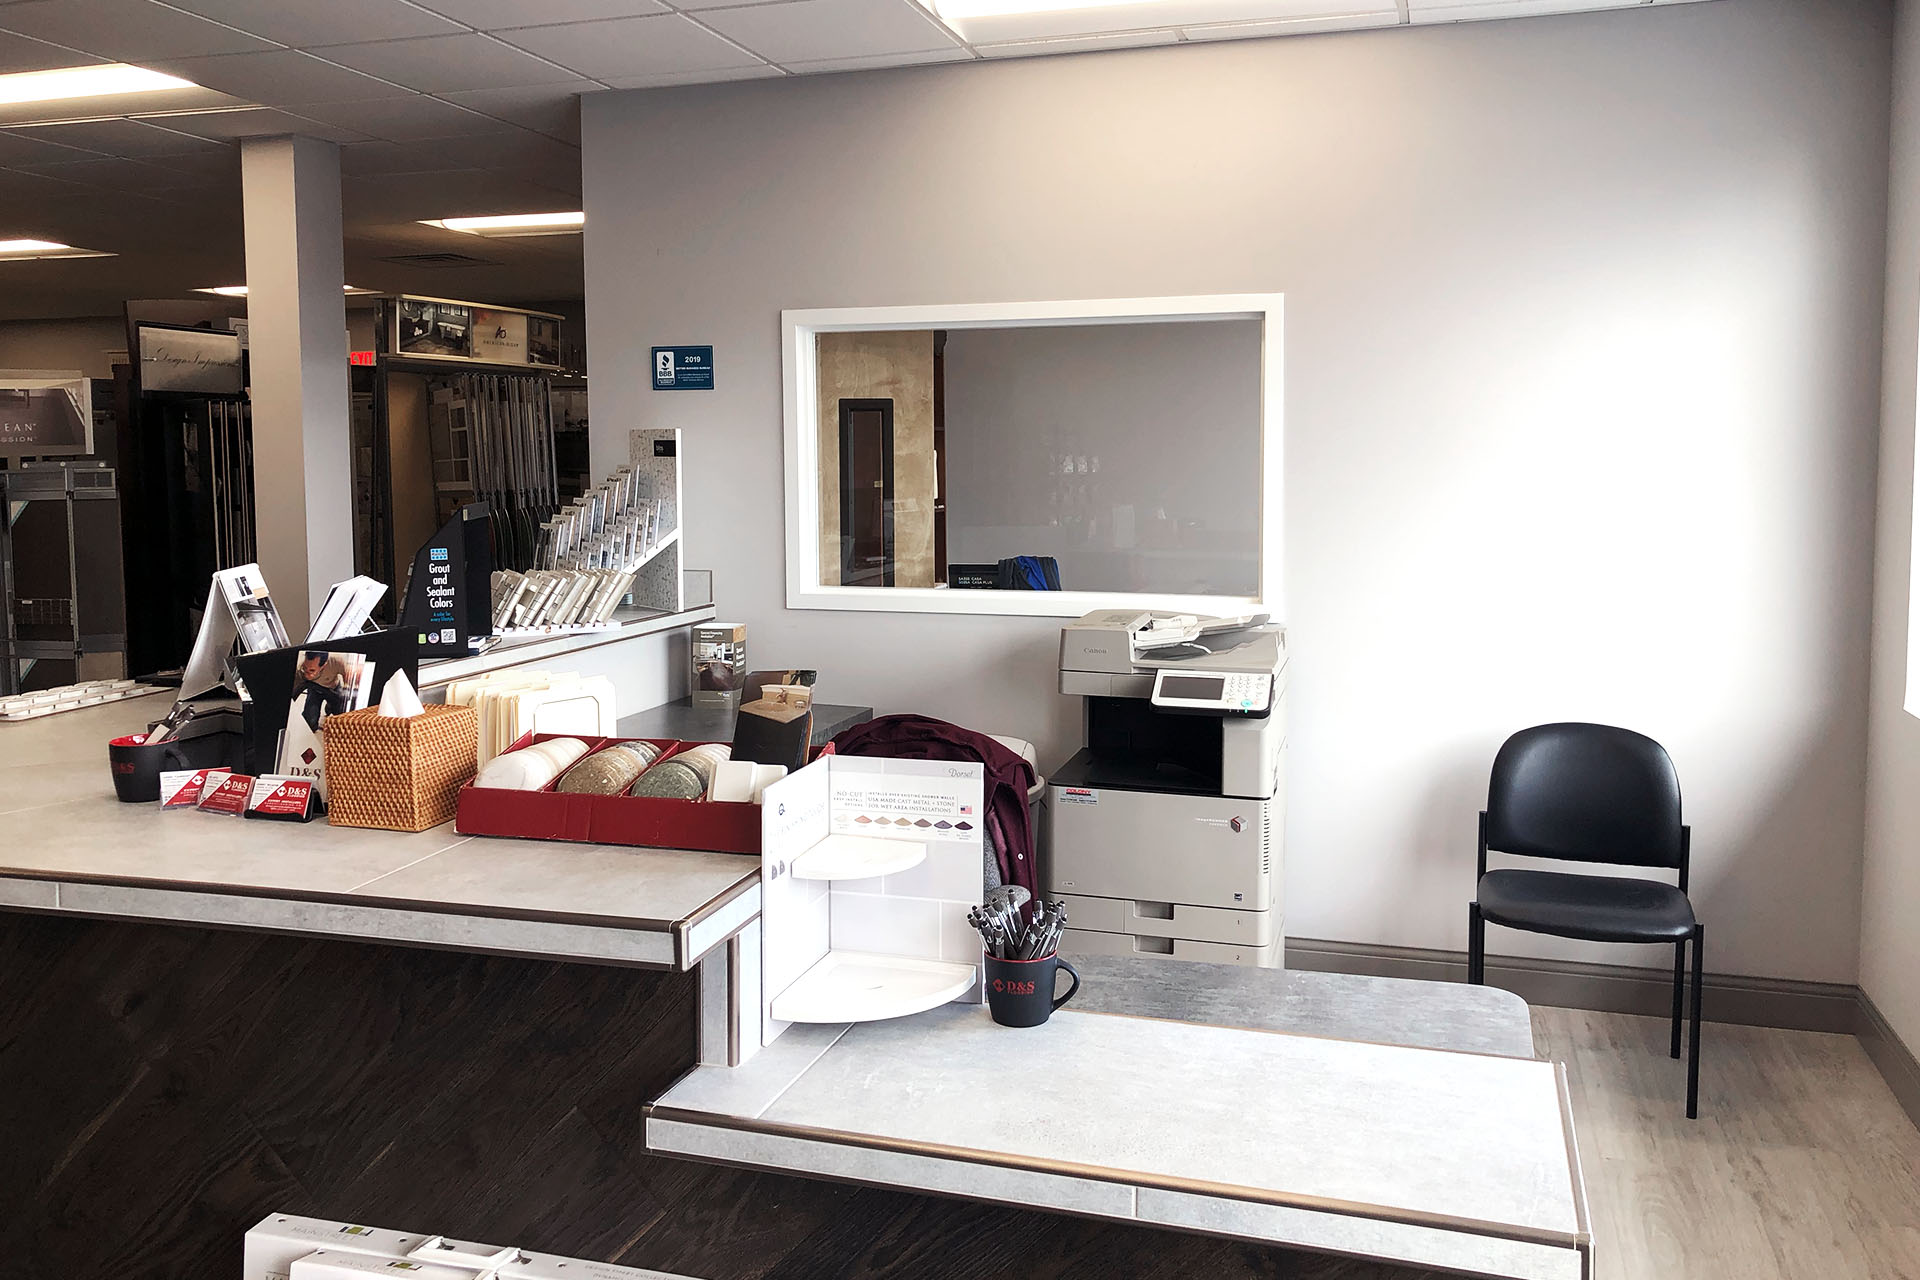 6707-2-after-showroom-march-2019-dandsflooring.jpg